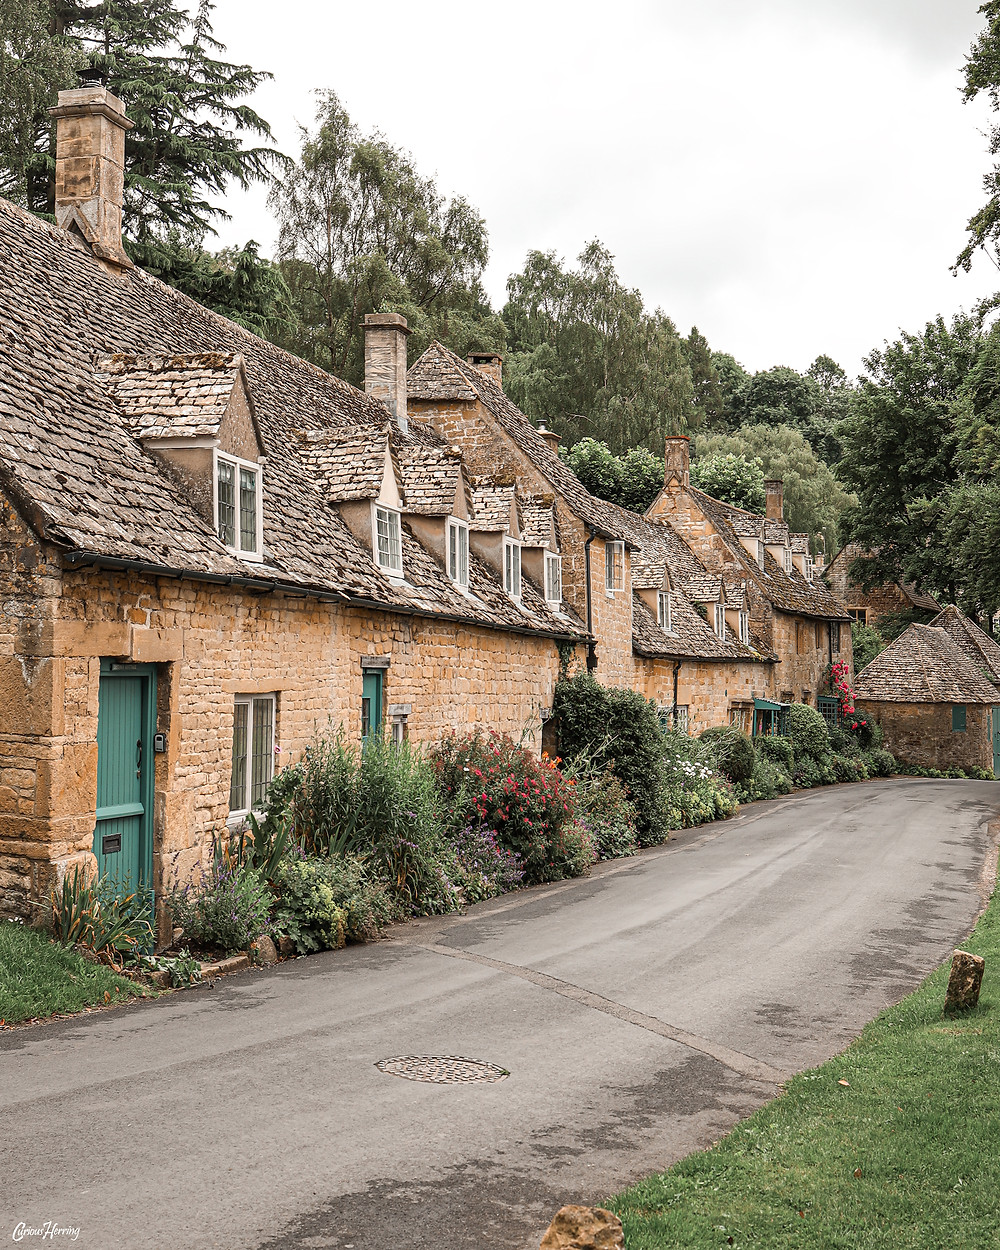 One of Britain's quietest villages, a row of ancient cottages in Snowshill, Cotswolds.